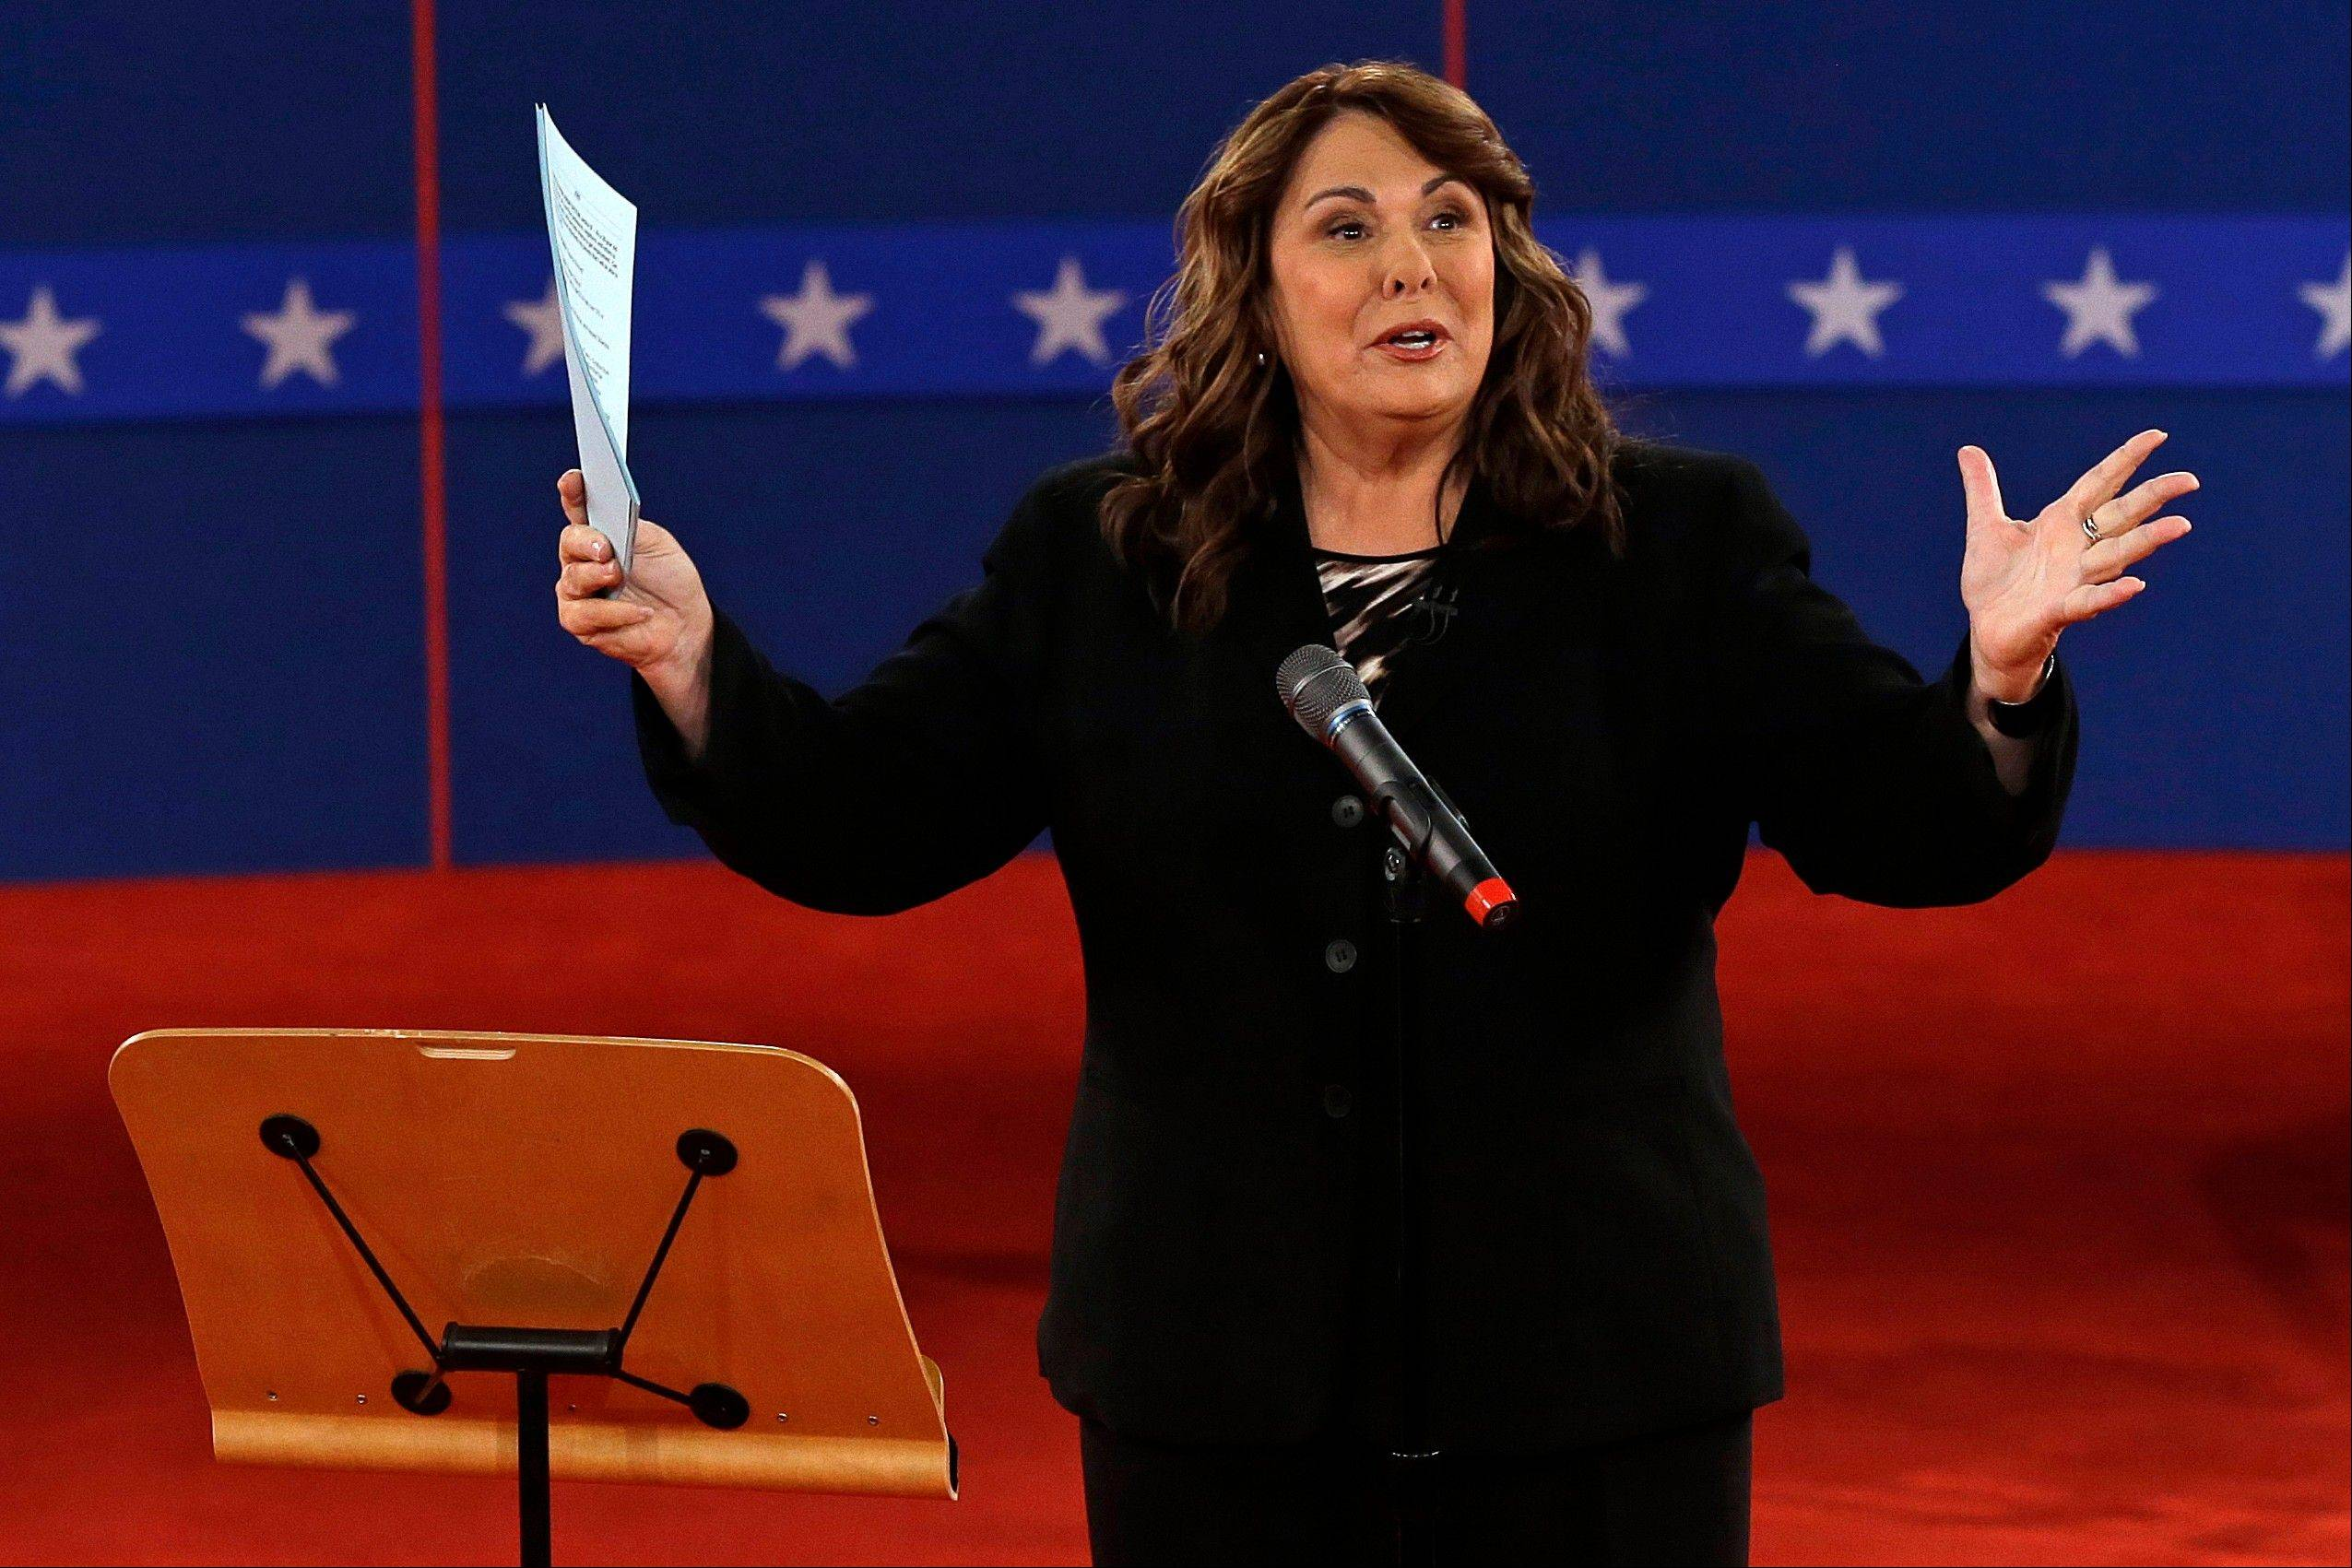 Moderator Candy Crowley talks to the audience before the second presidential debate at Hofstra University, Tuesday, Oct. 16, 2012, in Hempstead, N.Y.